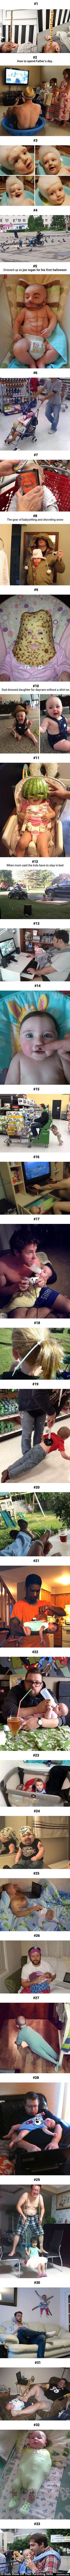 (Funny) 33 Dads Show Off Secret Perks Of Parenting Funny Kids, Funny Cute, The Funny, Hilarious, Funny Images, Funny Pictures, E Mc2, Dad Humor, Just For Laughs